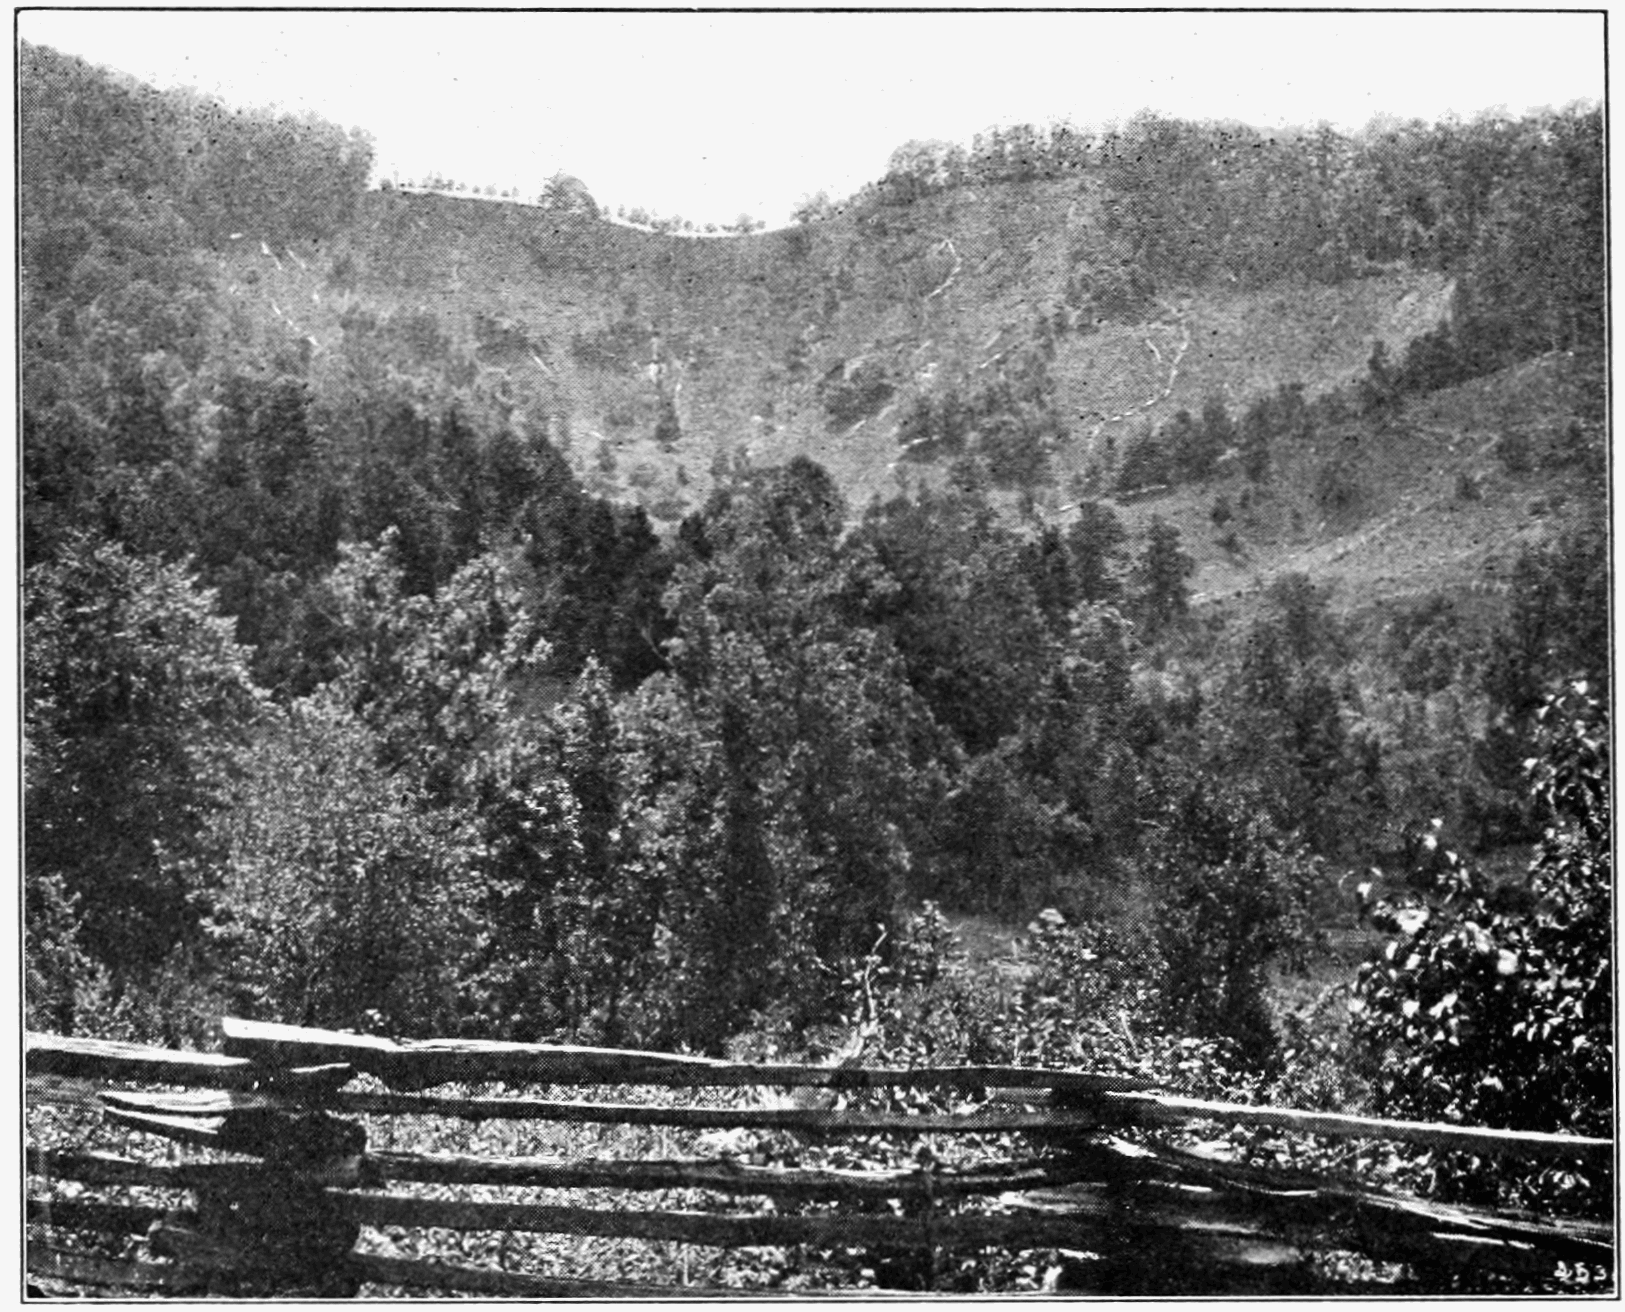 PSM V73 D188 Landslide in a pasture in mitchell county ca may 21 1901.png